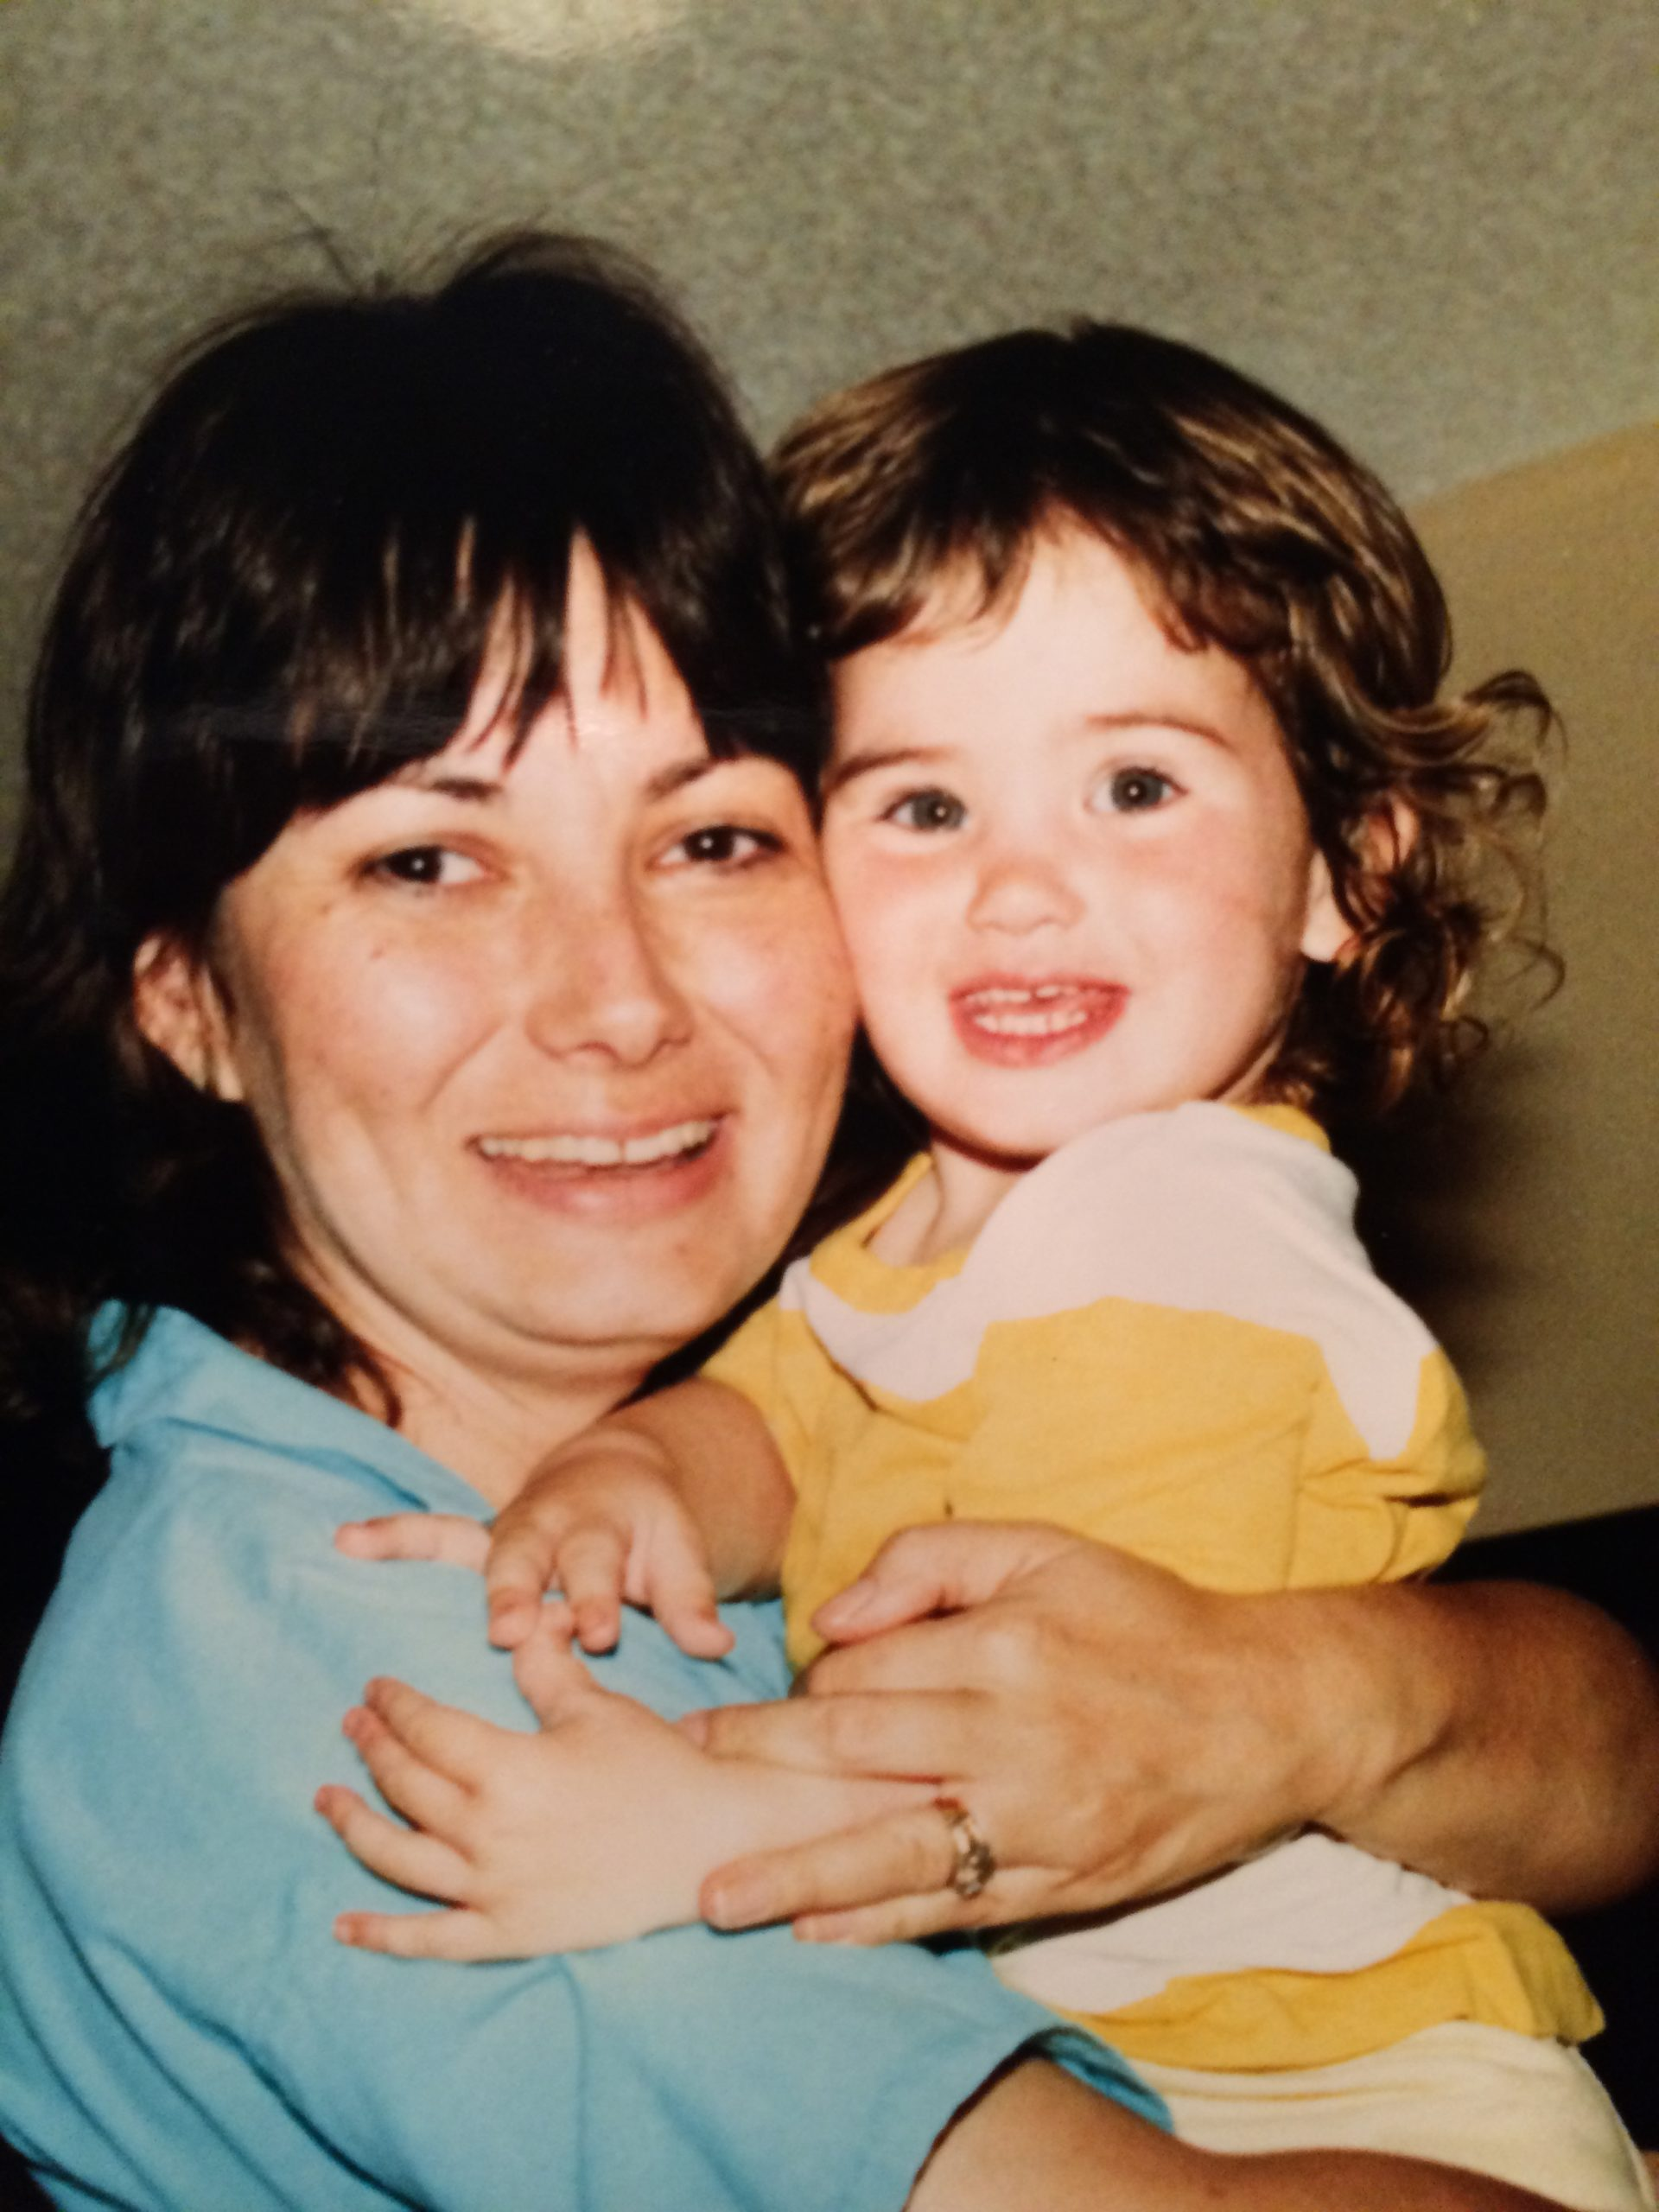 Author as a toddler being held by her mother